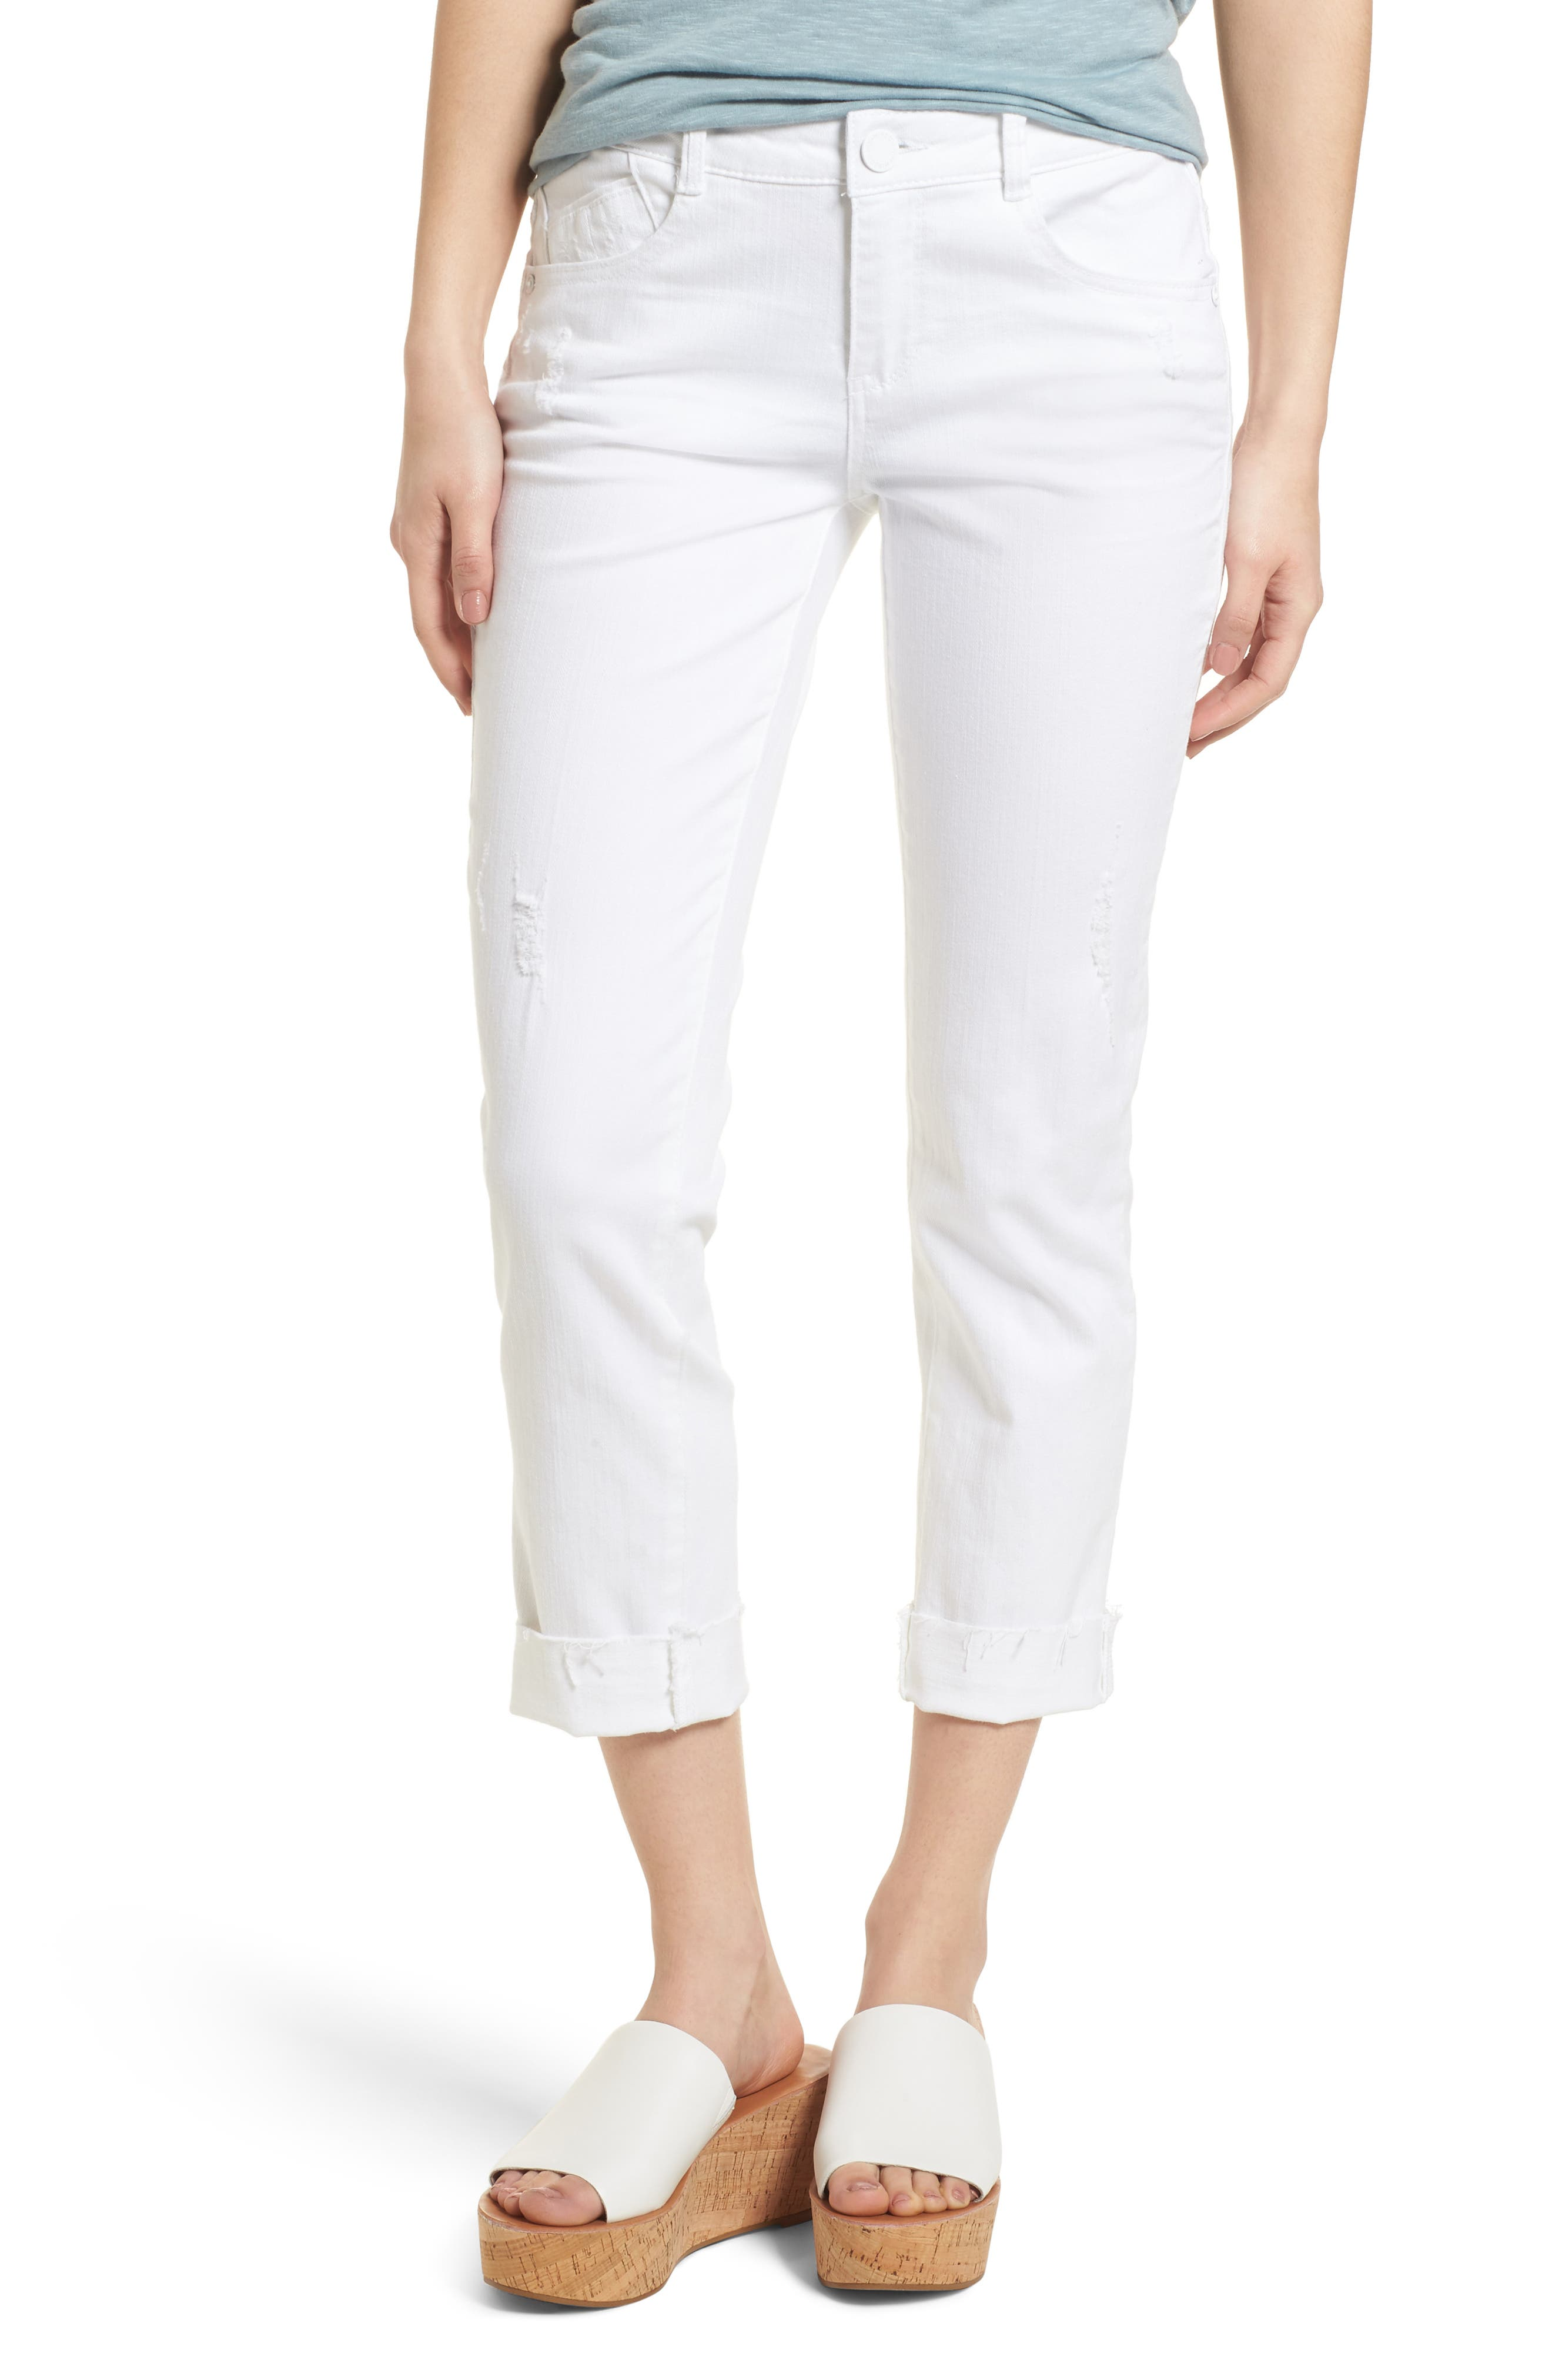 Wit & Wisdom Flex-ellent Cuffed Boyfriend Jeans (Optic White) (Nordstrom Exclusive)